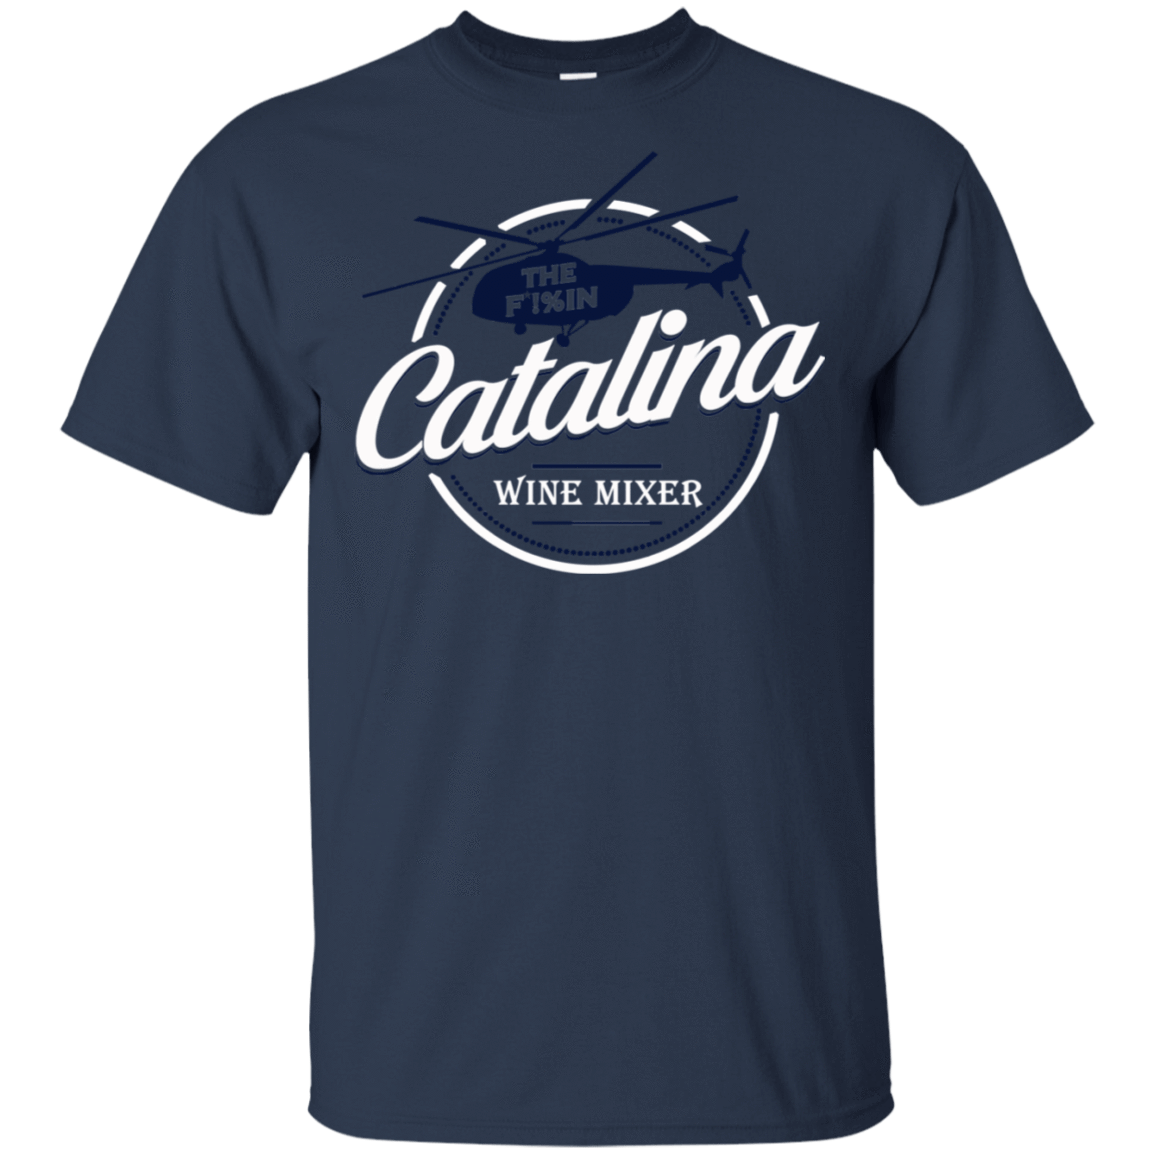 The Catalina Wine Mixer 22-111-73514012-250 - Tee Ript